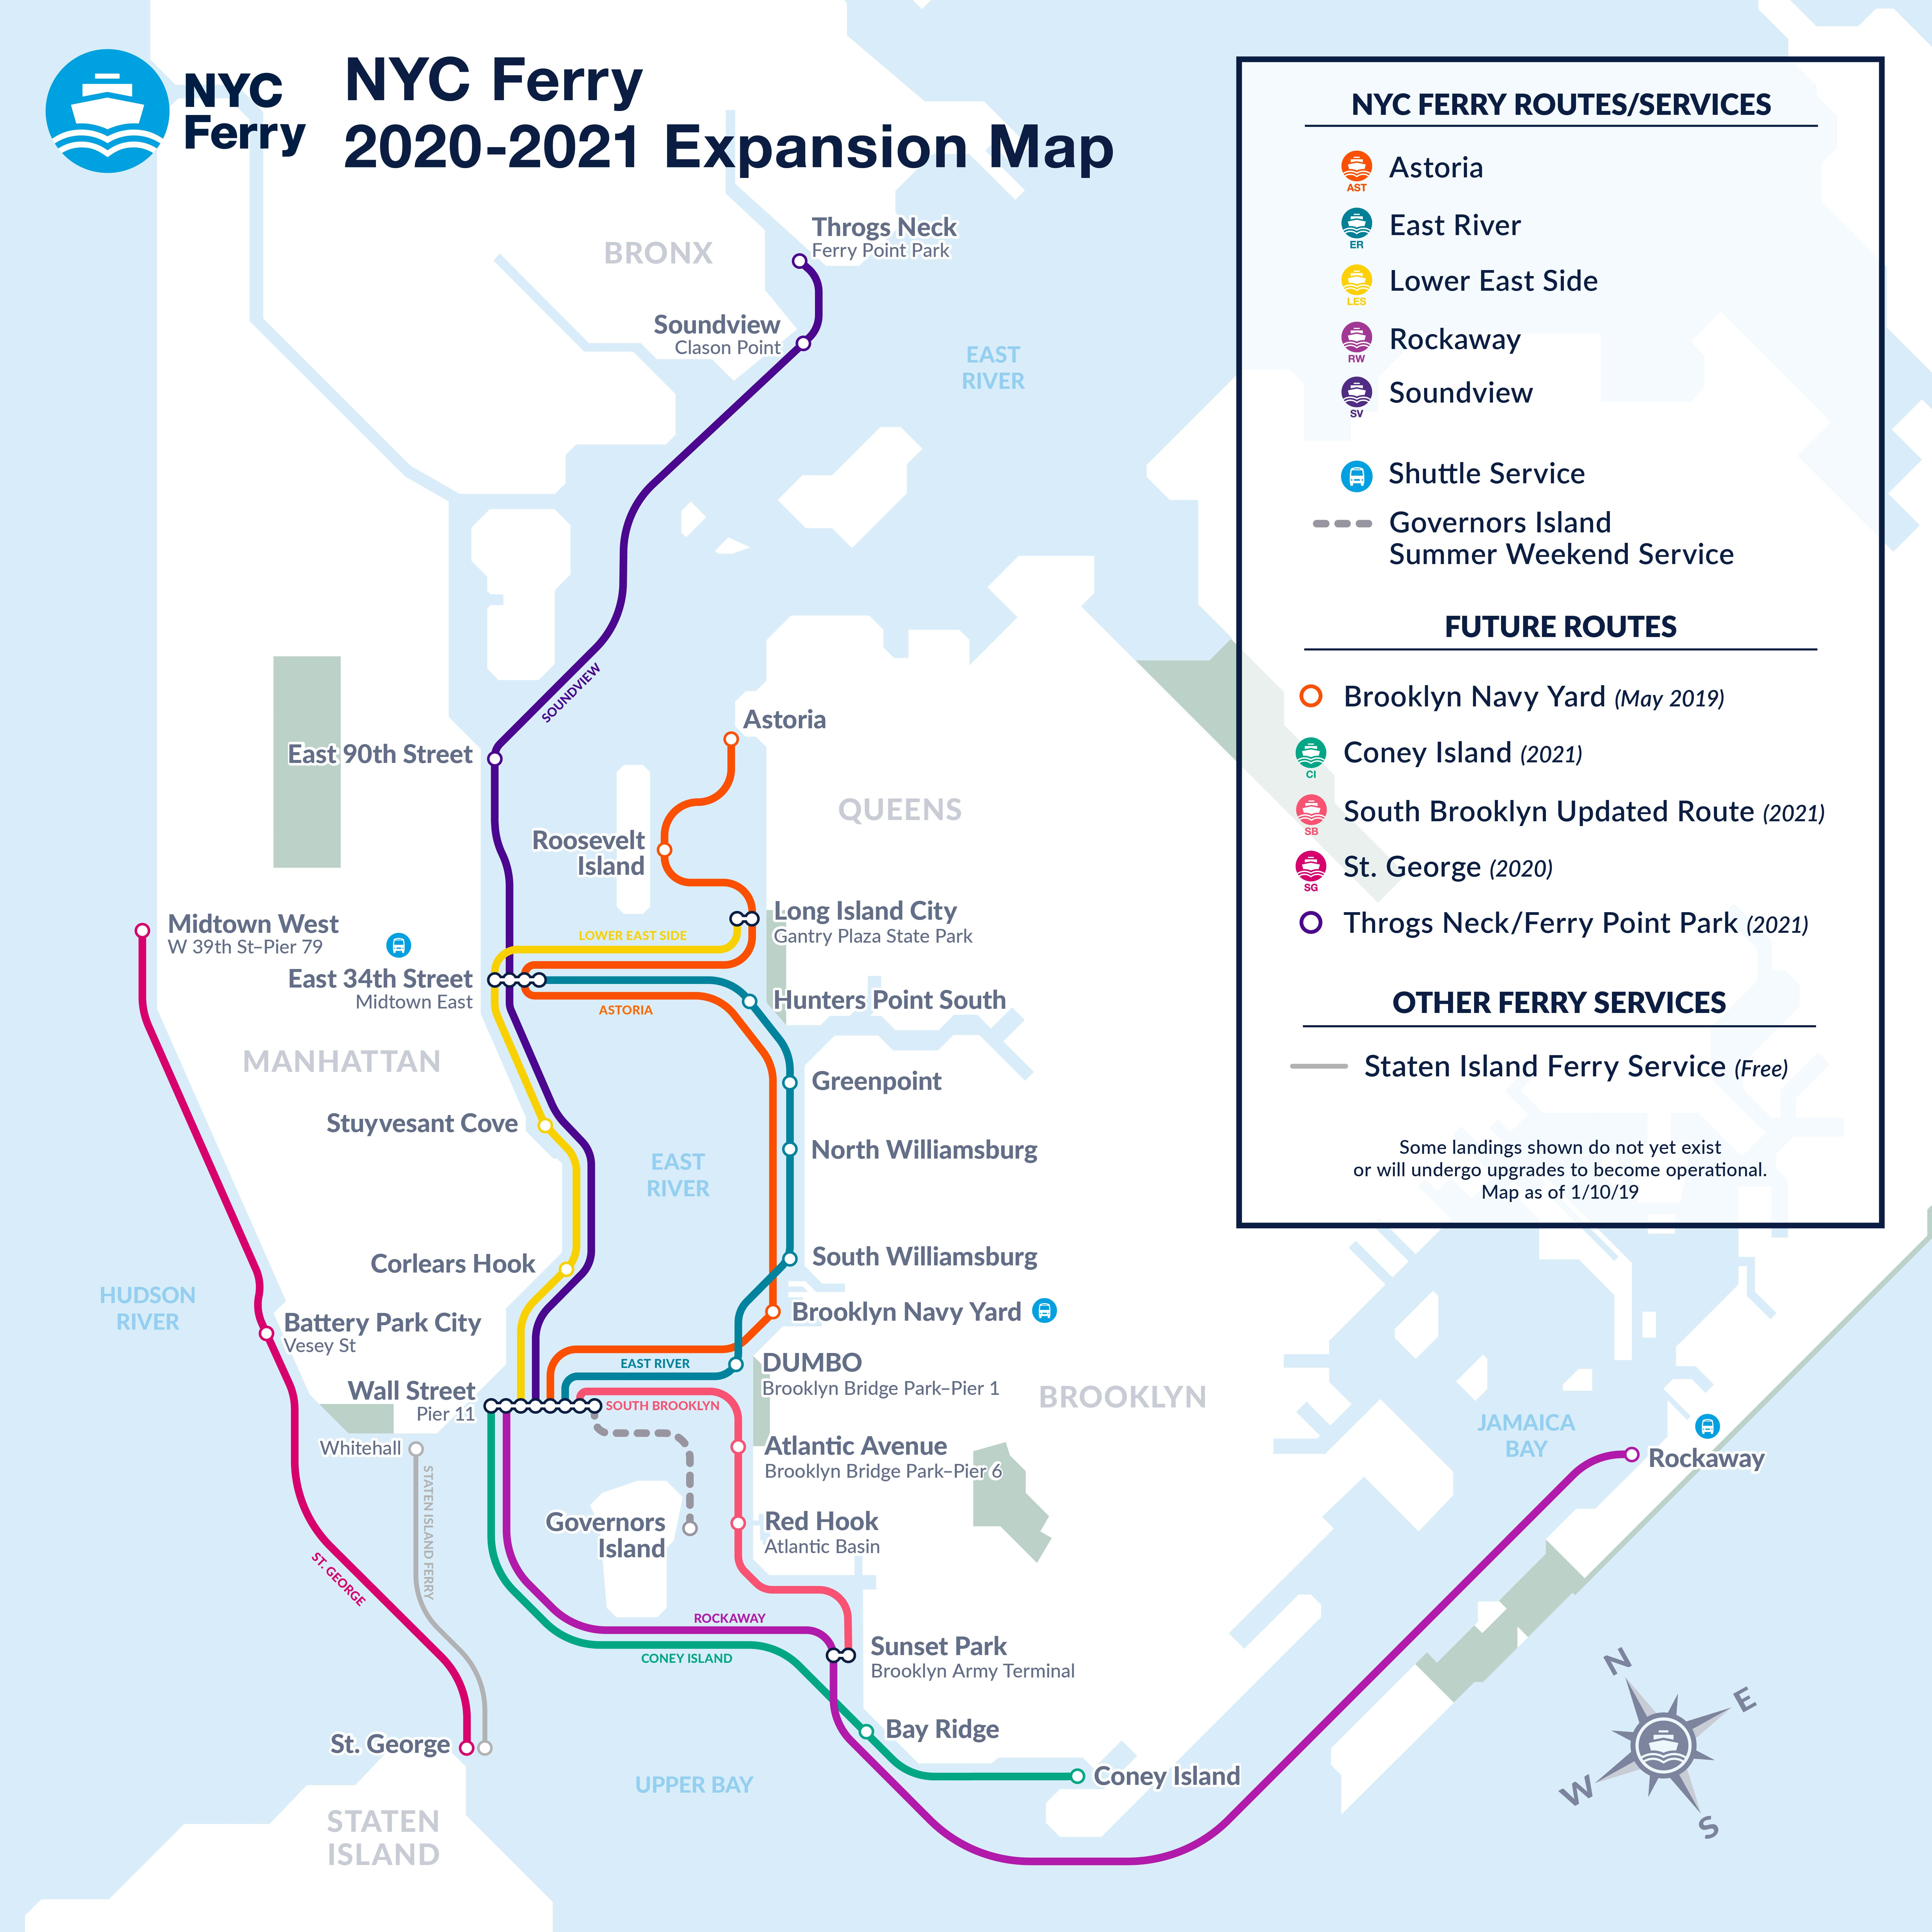 Subway Map To Coney Island.2020 2021 Expansion New York City Ferry Service